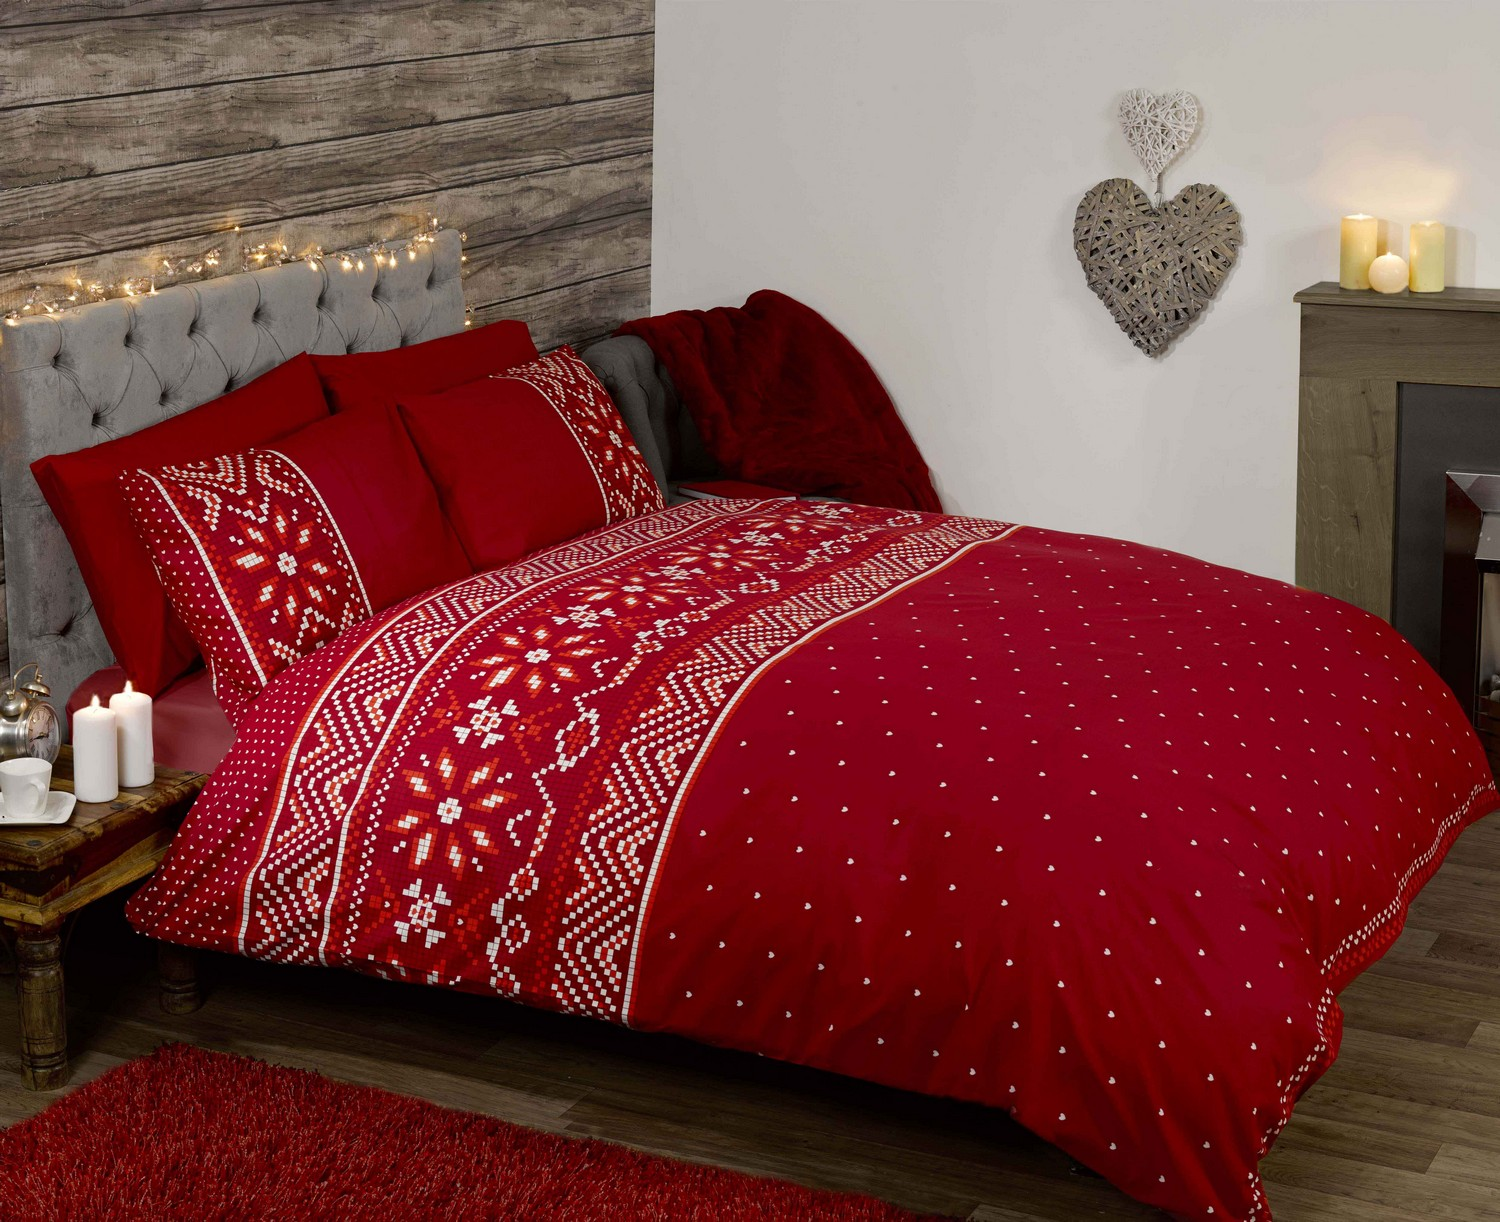 White and red bed sheets - Nordic White Red Love Hearts Quilt Duvet Cover Bedding Bed Set 3 Sizes New